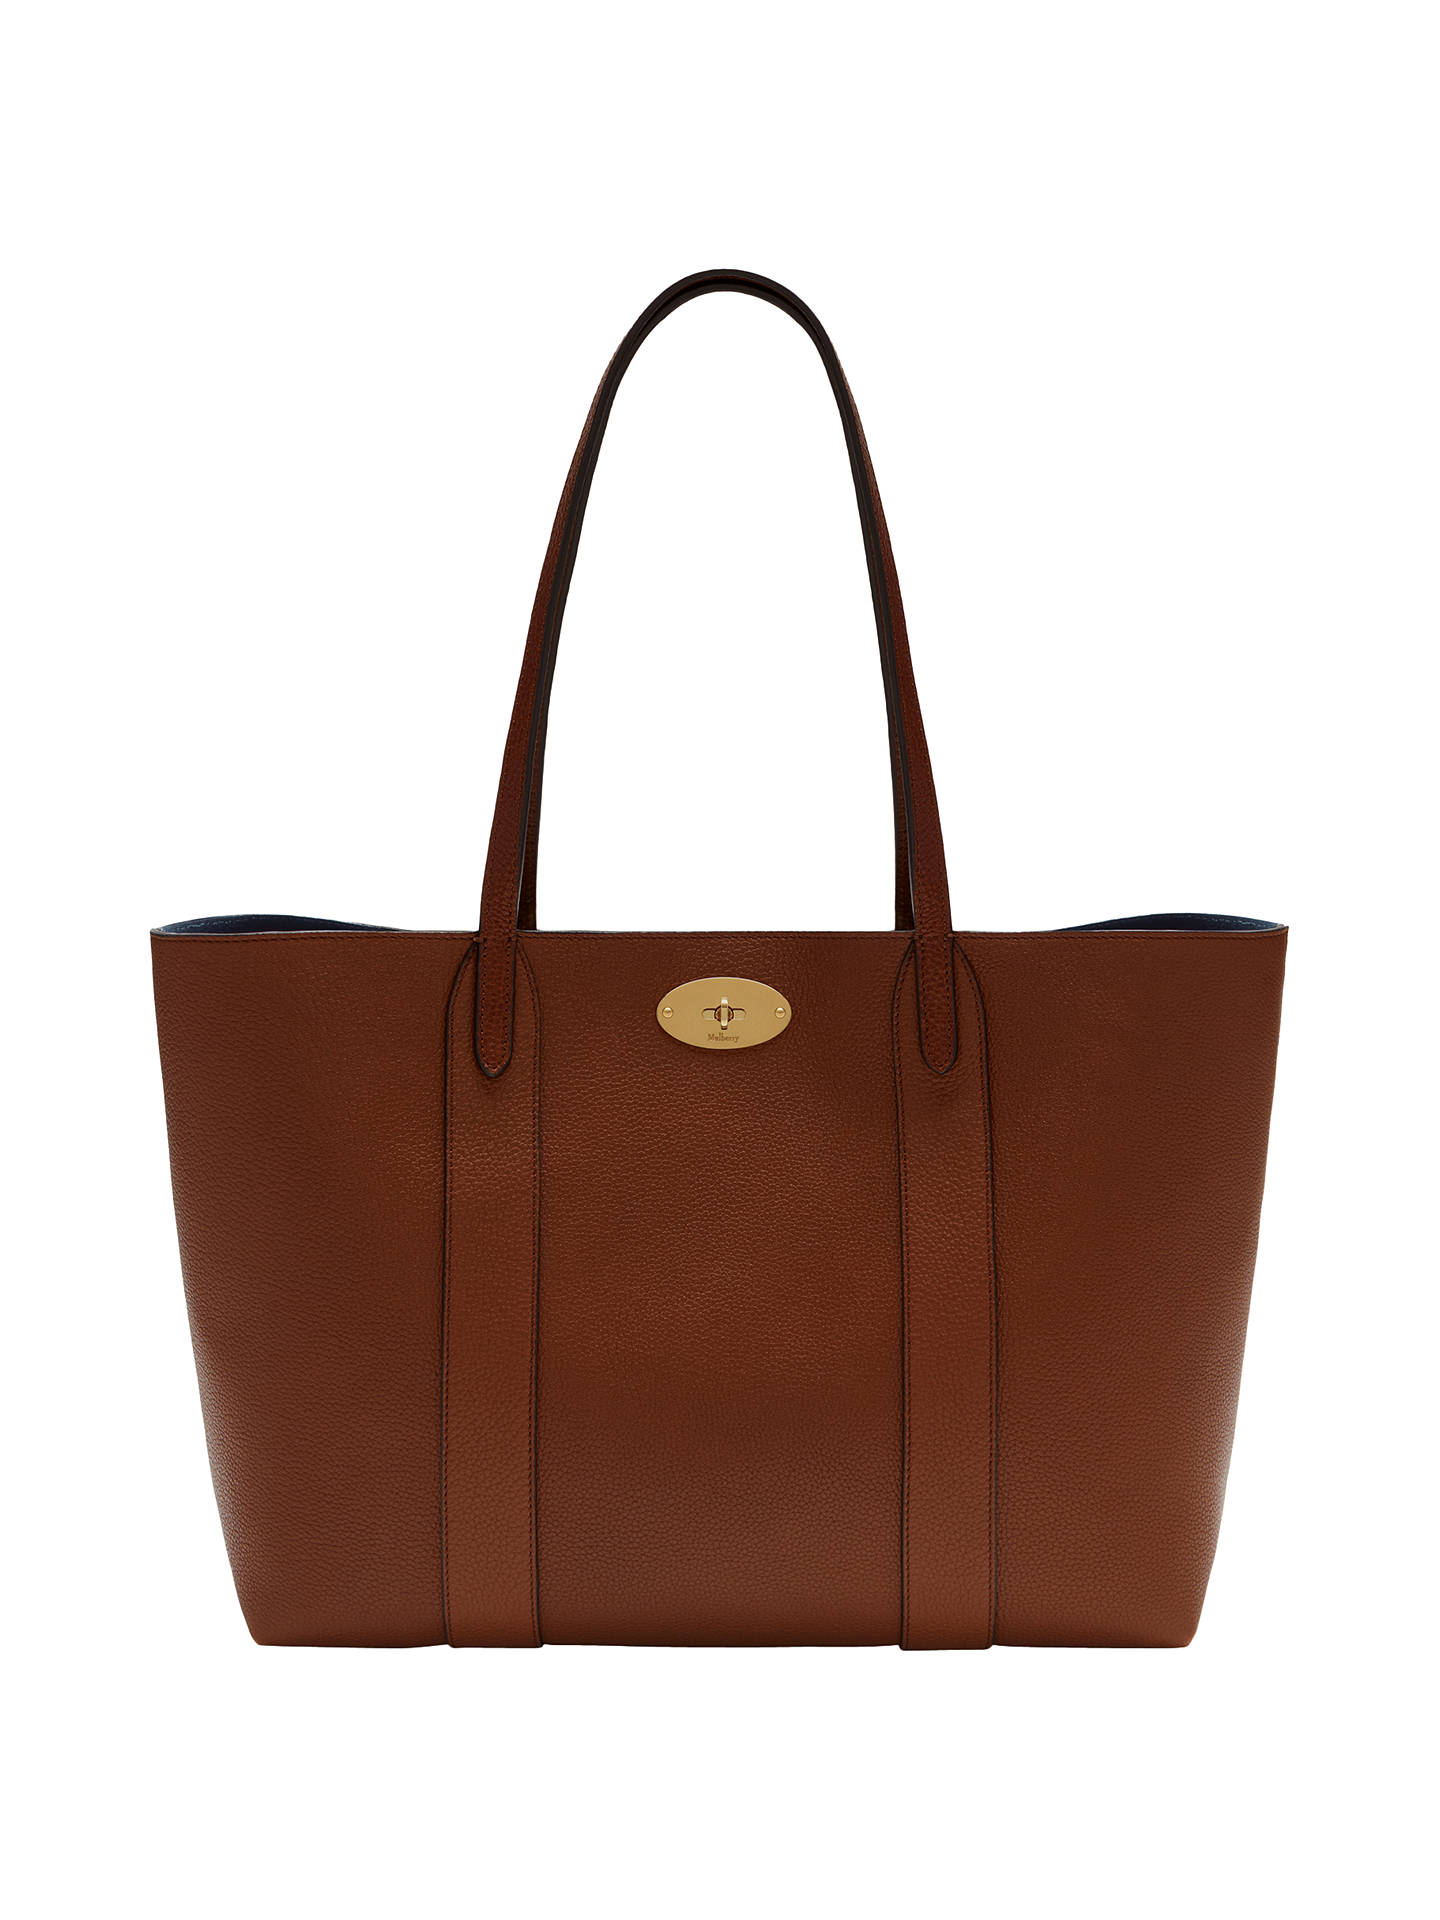 c330148a156 BuyMulberry Bayswater Leather Tote Bag, Oak Online at johnlewis.com ...